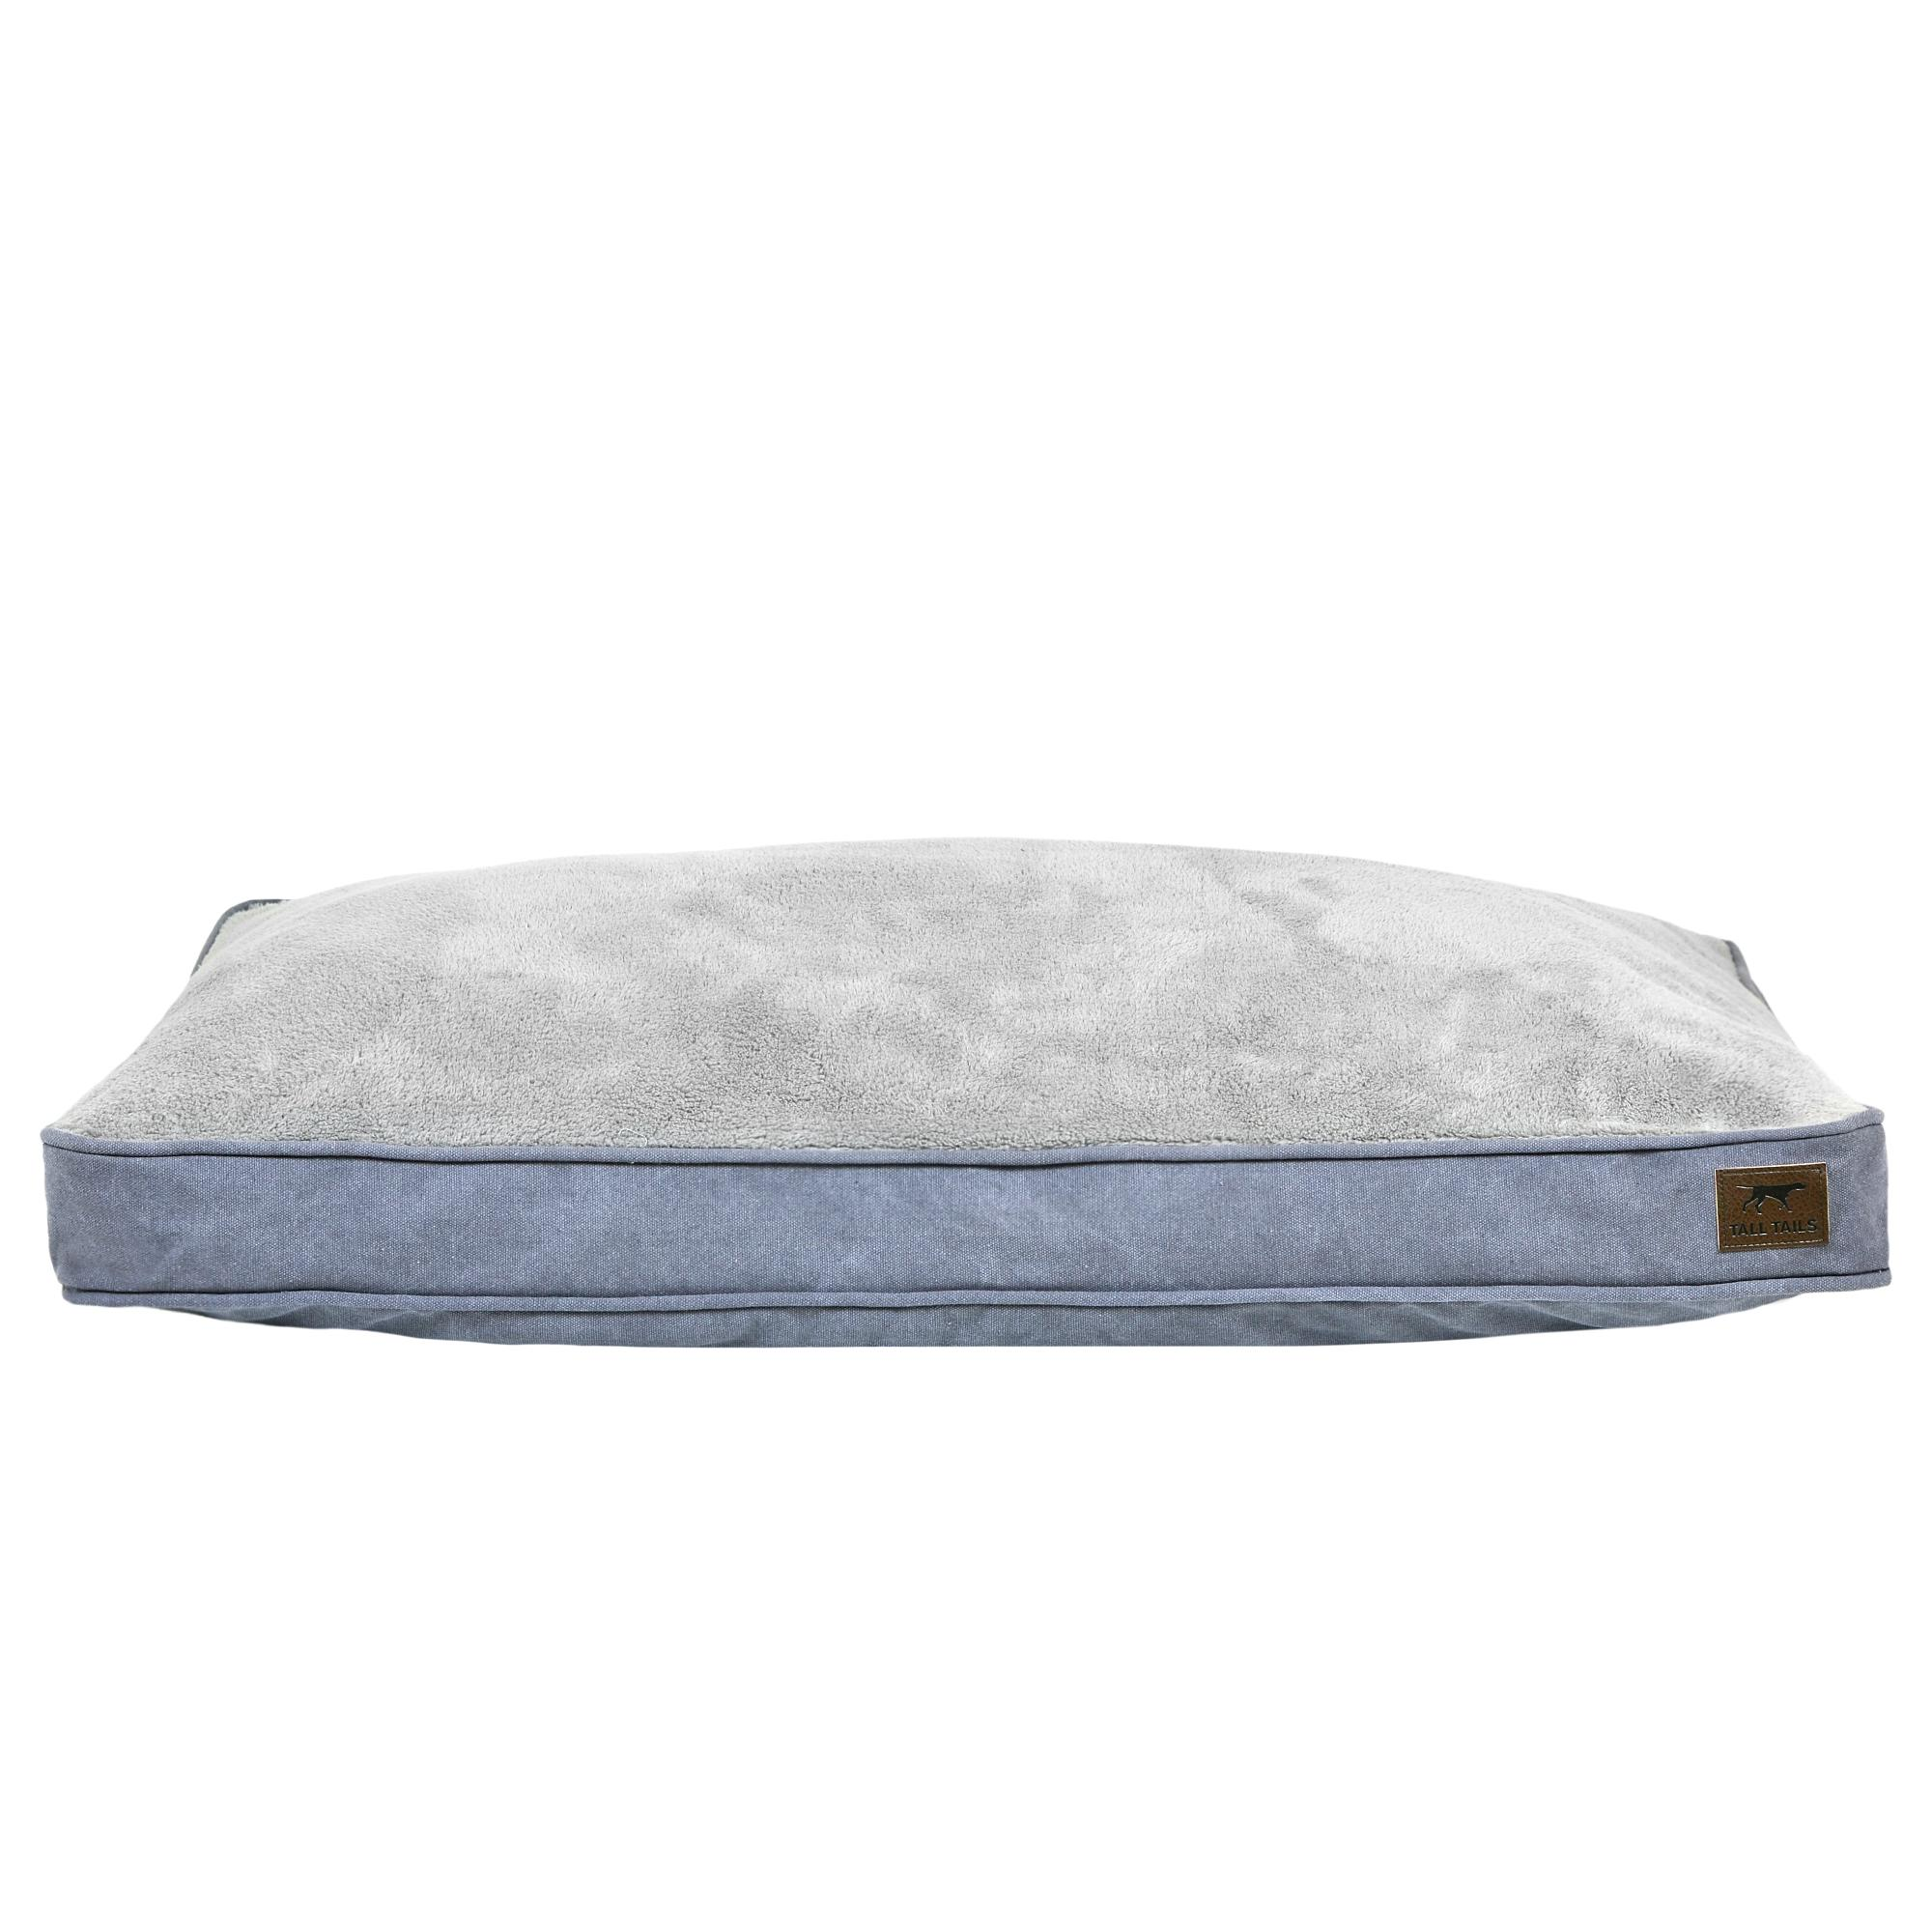 Tall Tails Dream Chaser Cushion Dog Bed, Charcoal, Medium